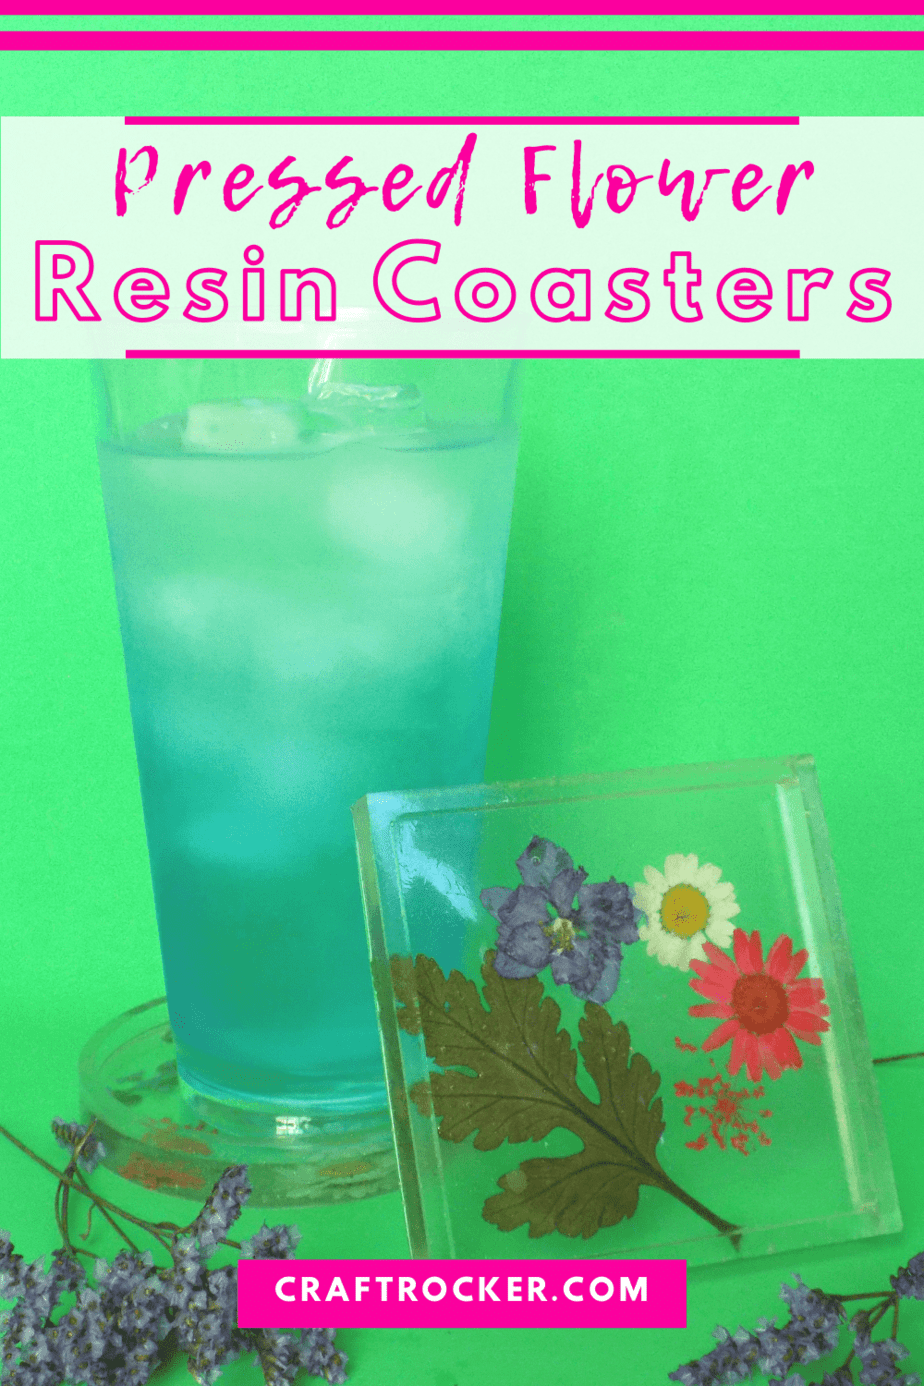 Flower Resin Coaster Leaning Against Cup on Coaster with text overlay - Pressed Flower Resin Coasters - Craft Rocker